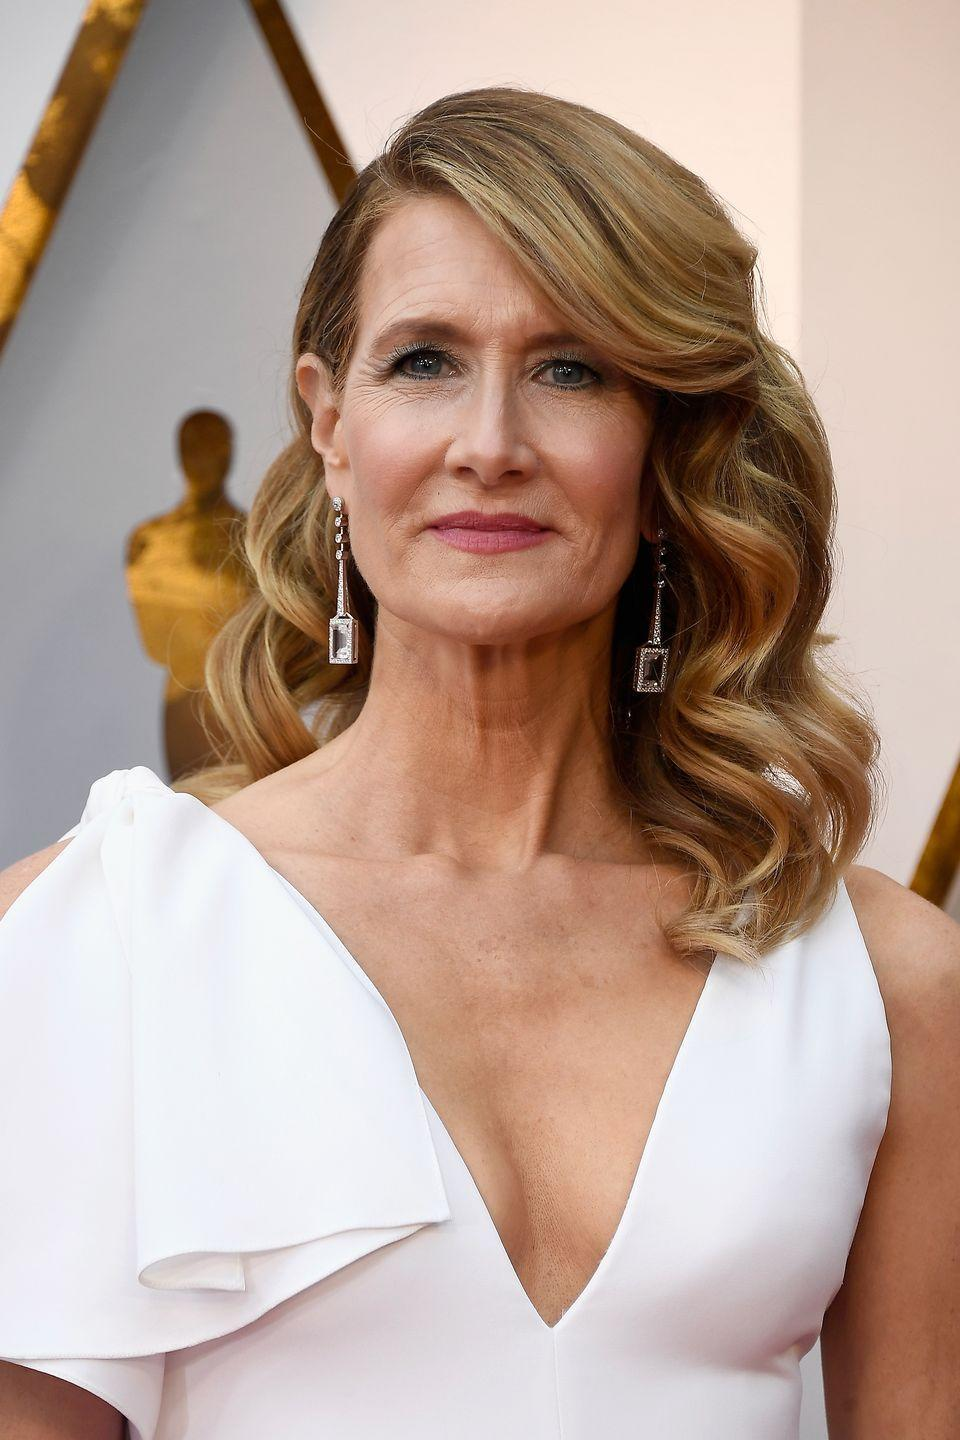 <p>If you've always wanted bangs but aren't <em>quite</em> ready to make the commitment to having them in your face all the time, try bangs that sweep off to one side. Style the rest of your hair asymmetrically and wavy for a beautiful Laura Dern-inspired look.</p>